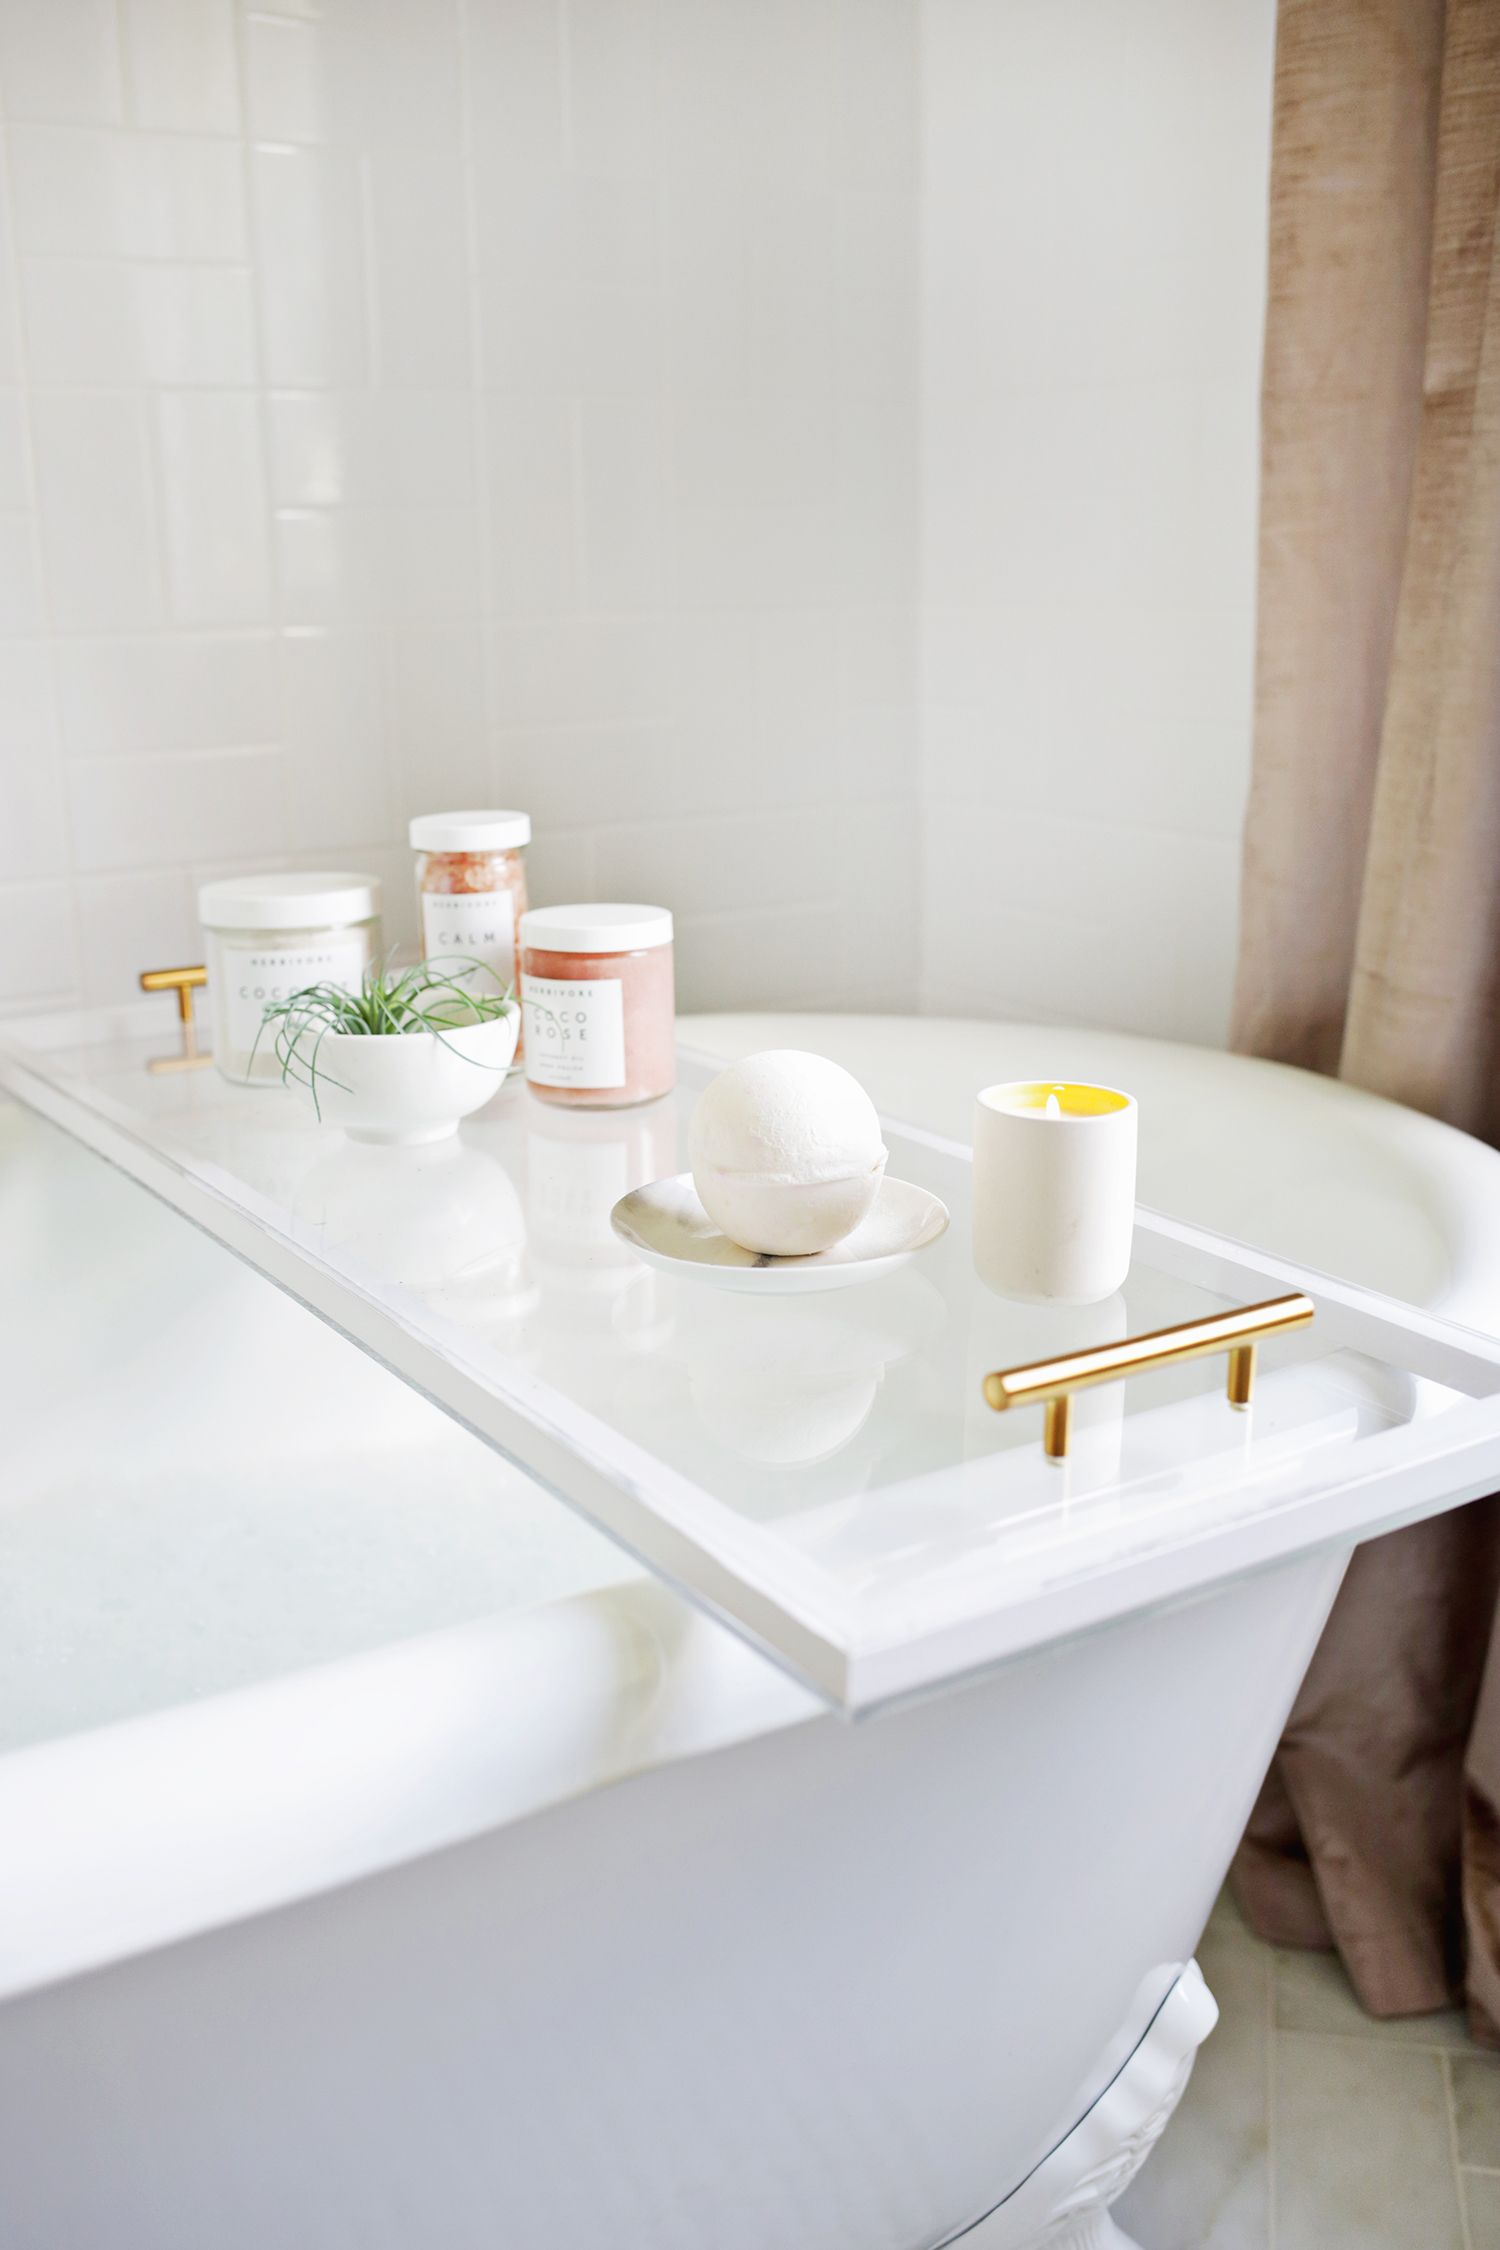 Diy Lucite Bathtub Caddy Diy Bathtub Bathtub Decor